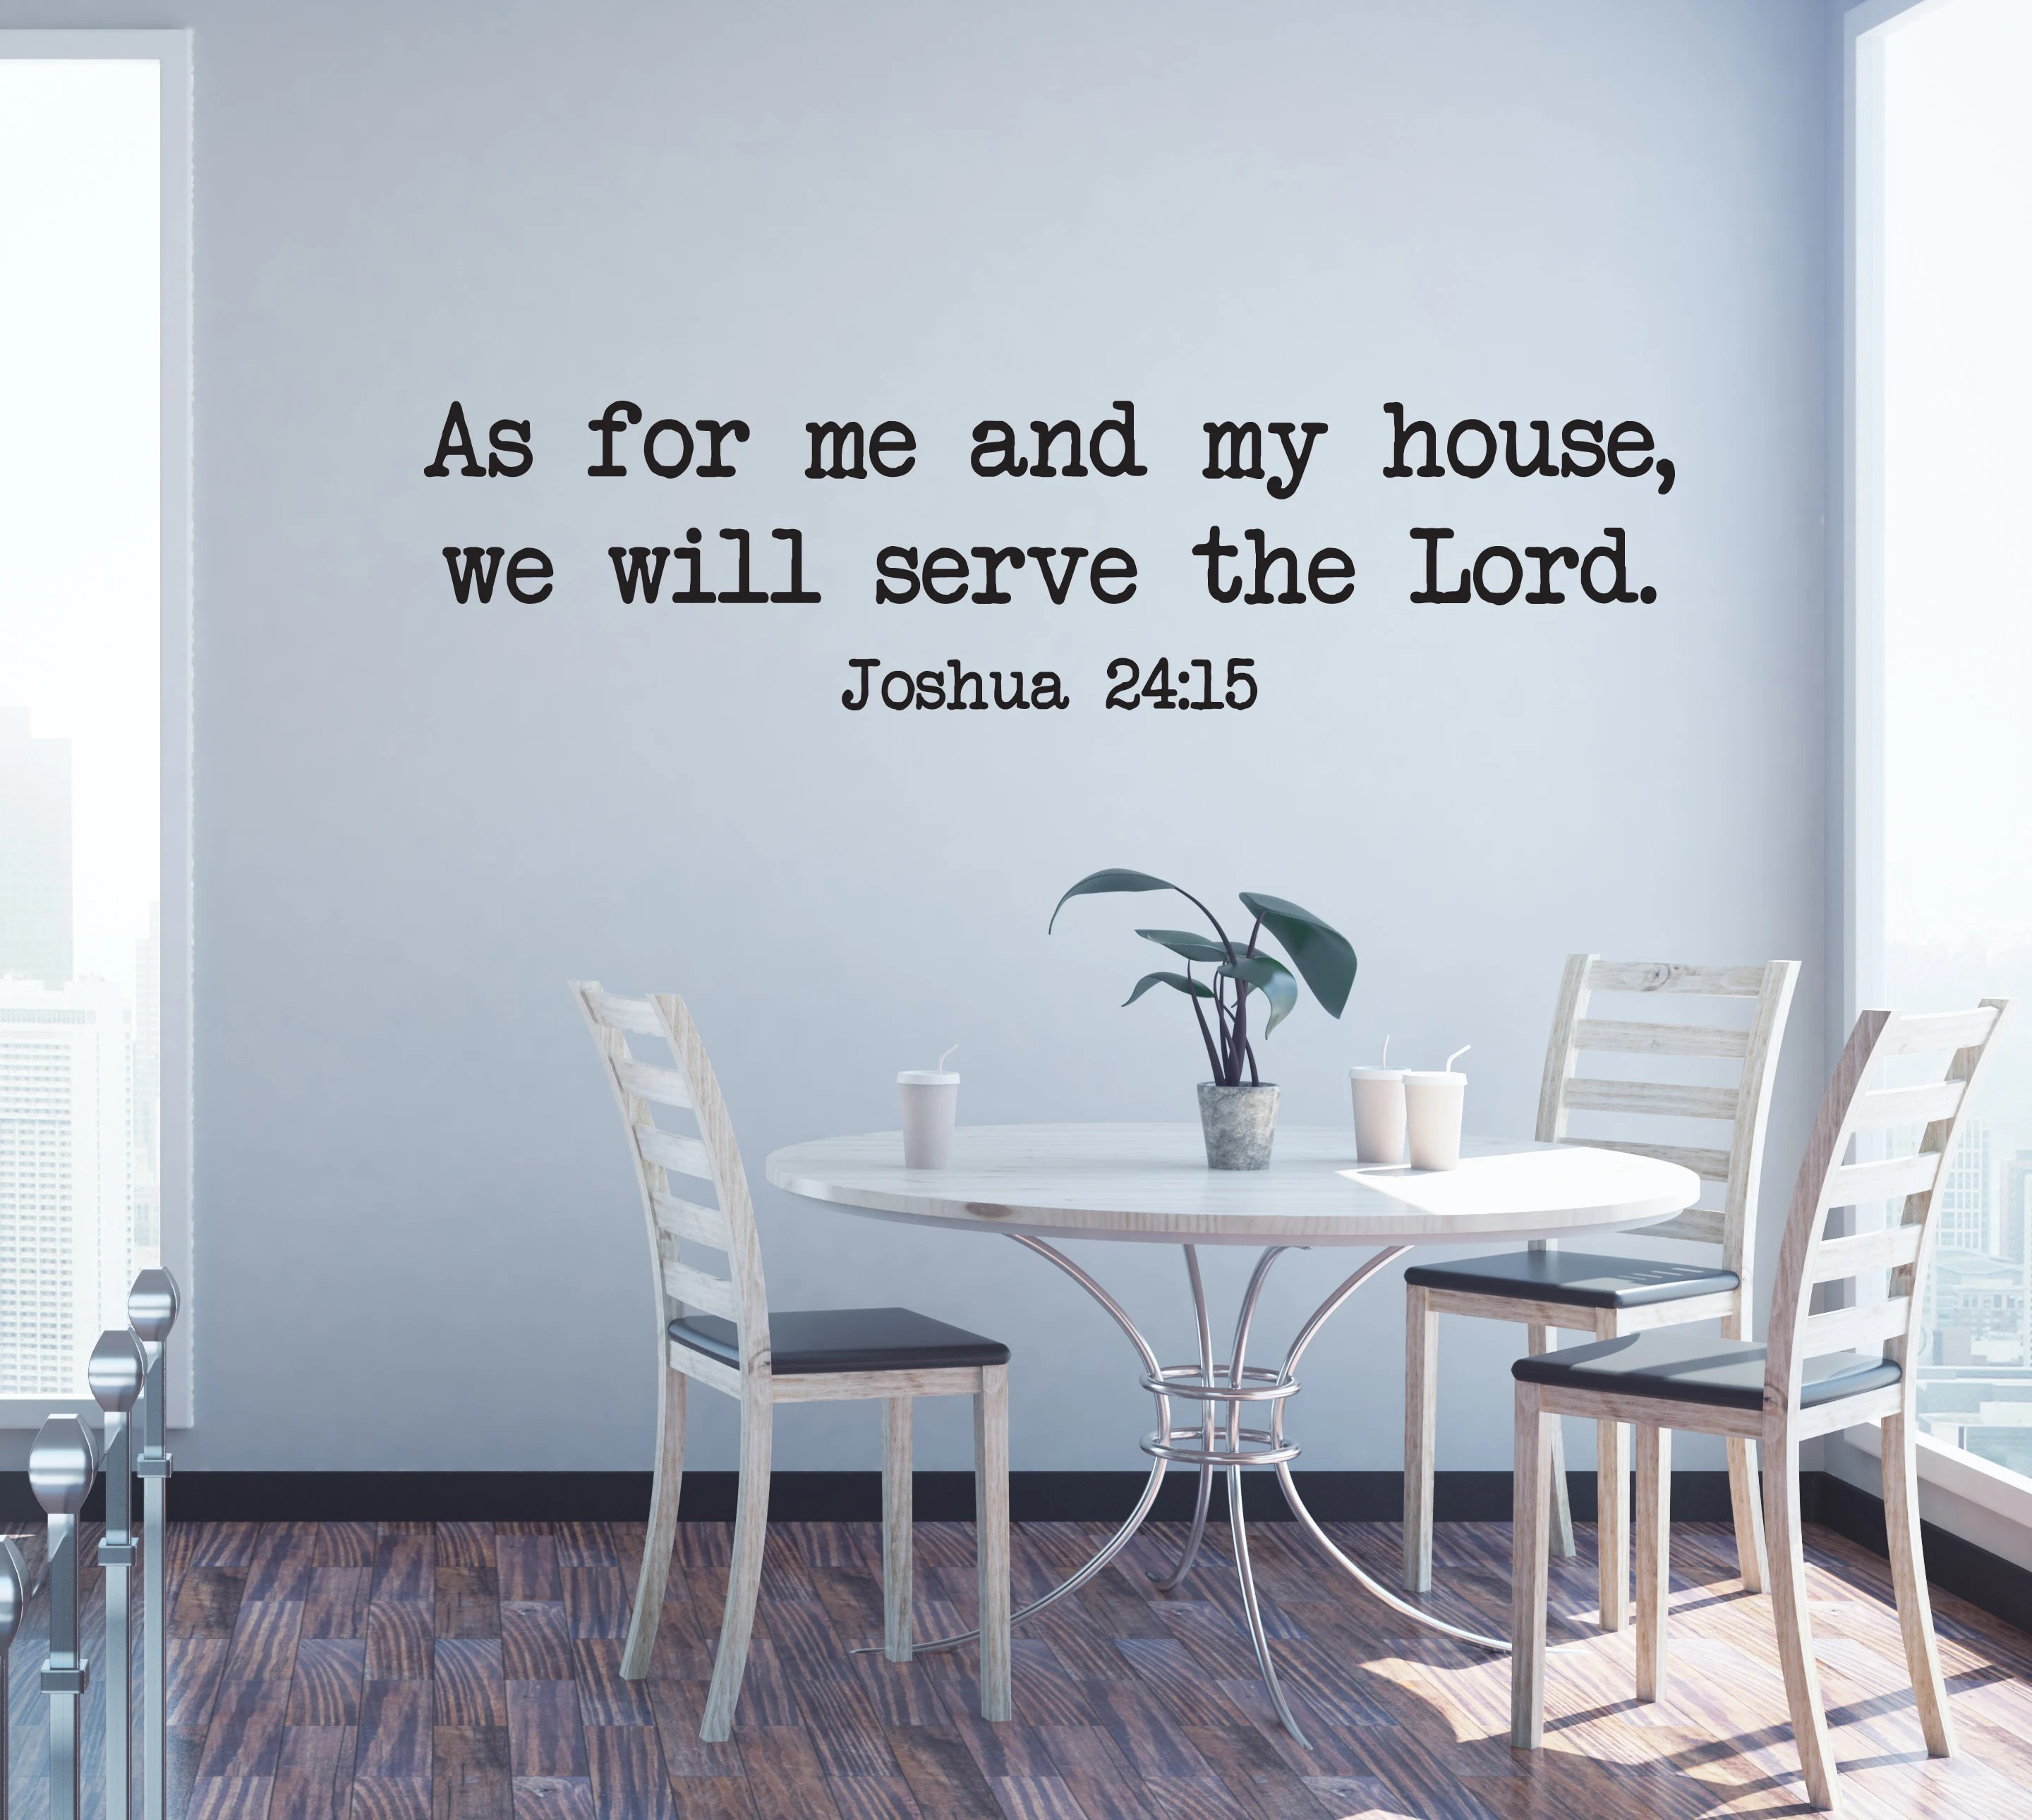 My Home 24 Vinyl Wall Art Decal | Joshua 24:15 | As For Me And My House, We Will Serve The Lord. | Christian Home Household Family Living Room Decor